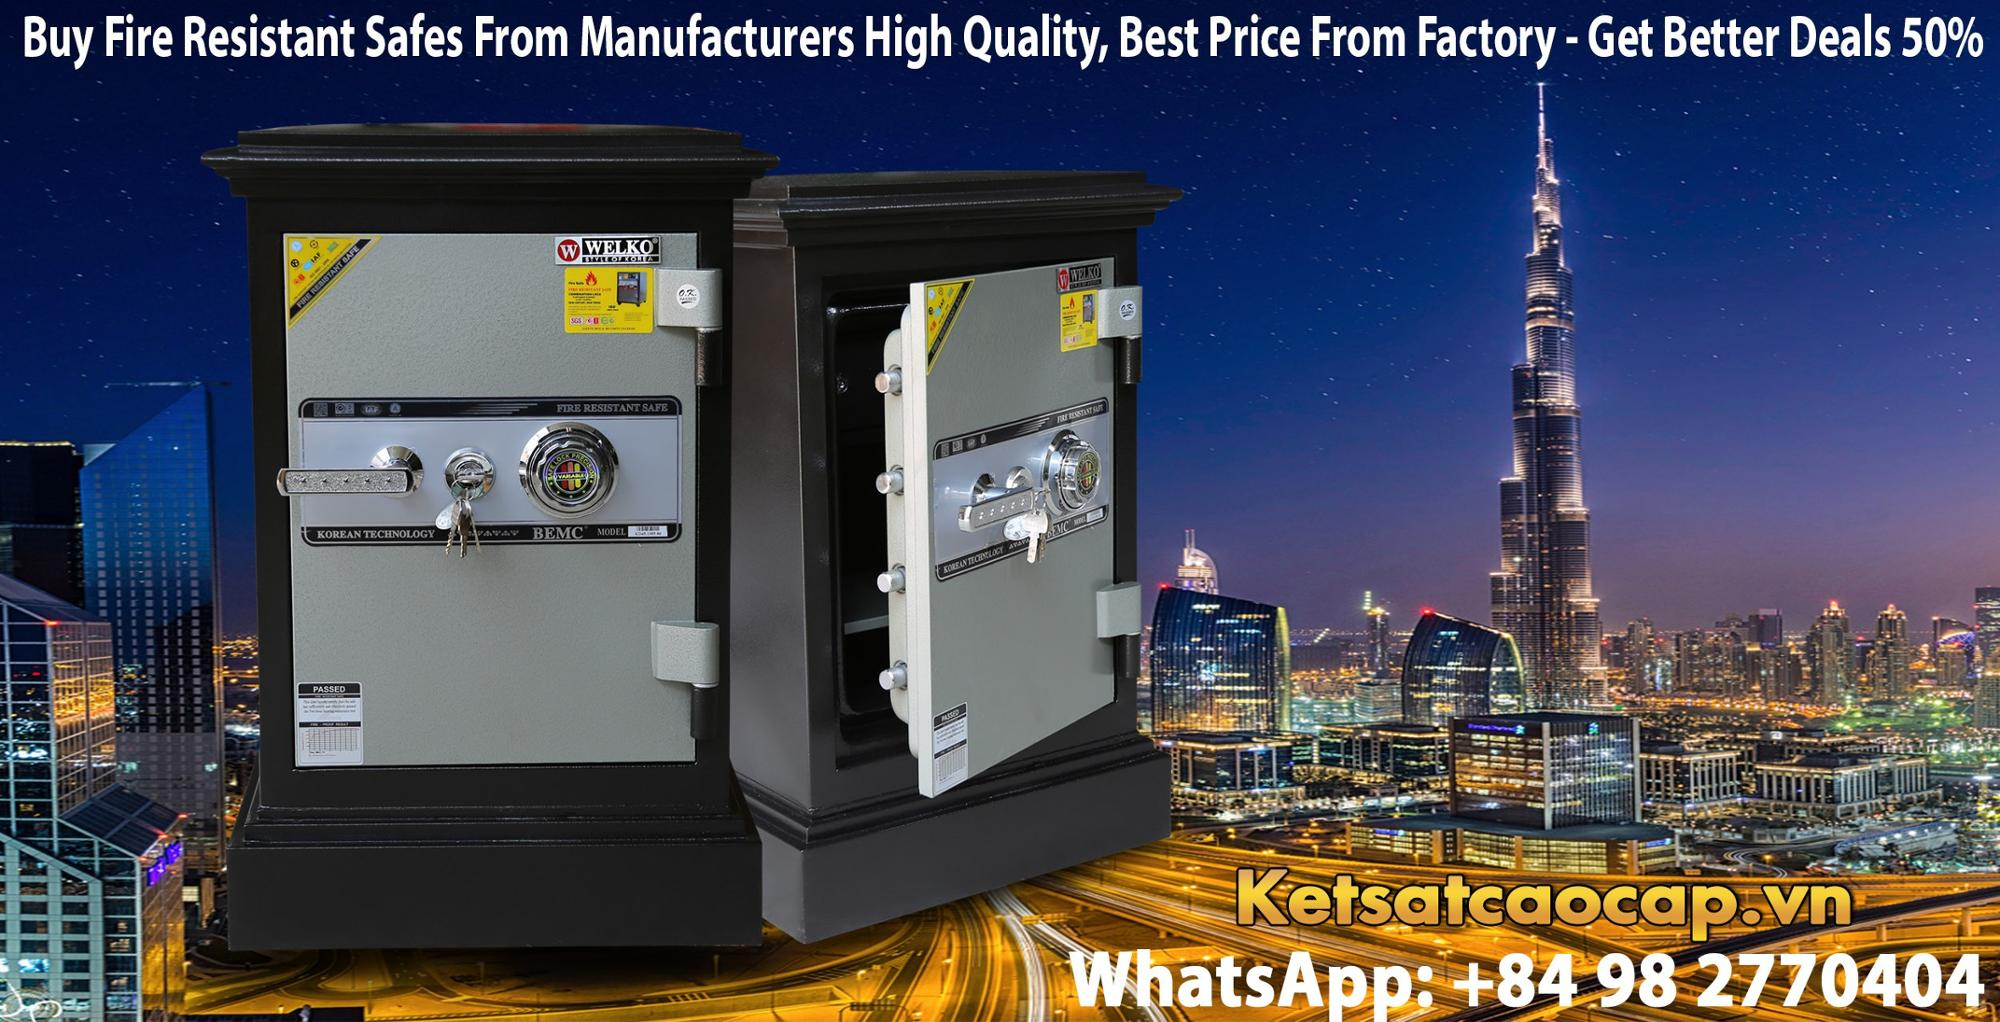 Home Safes High Quality Price Ratio